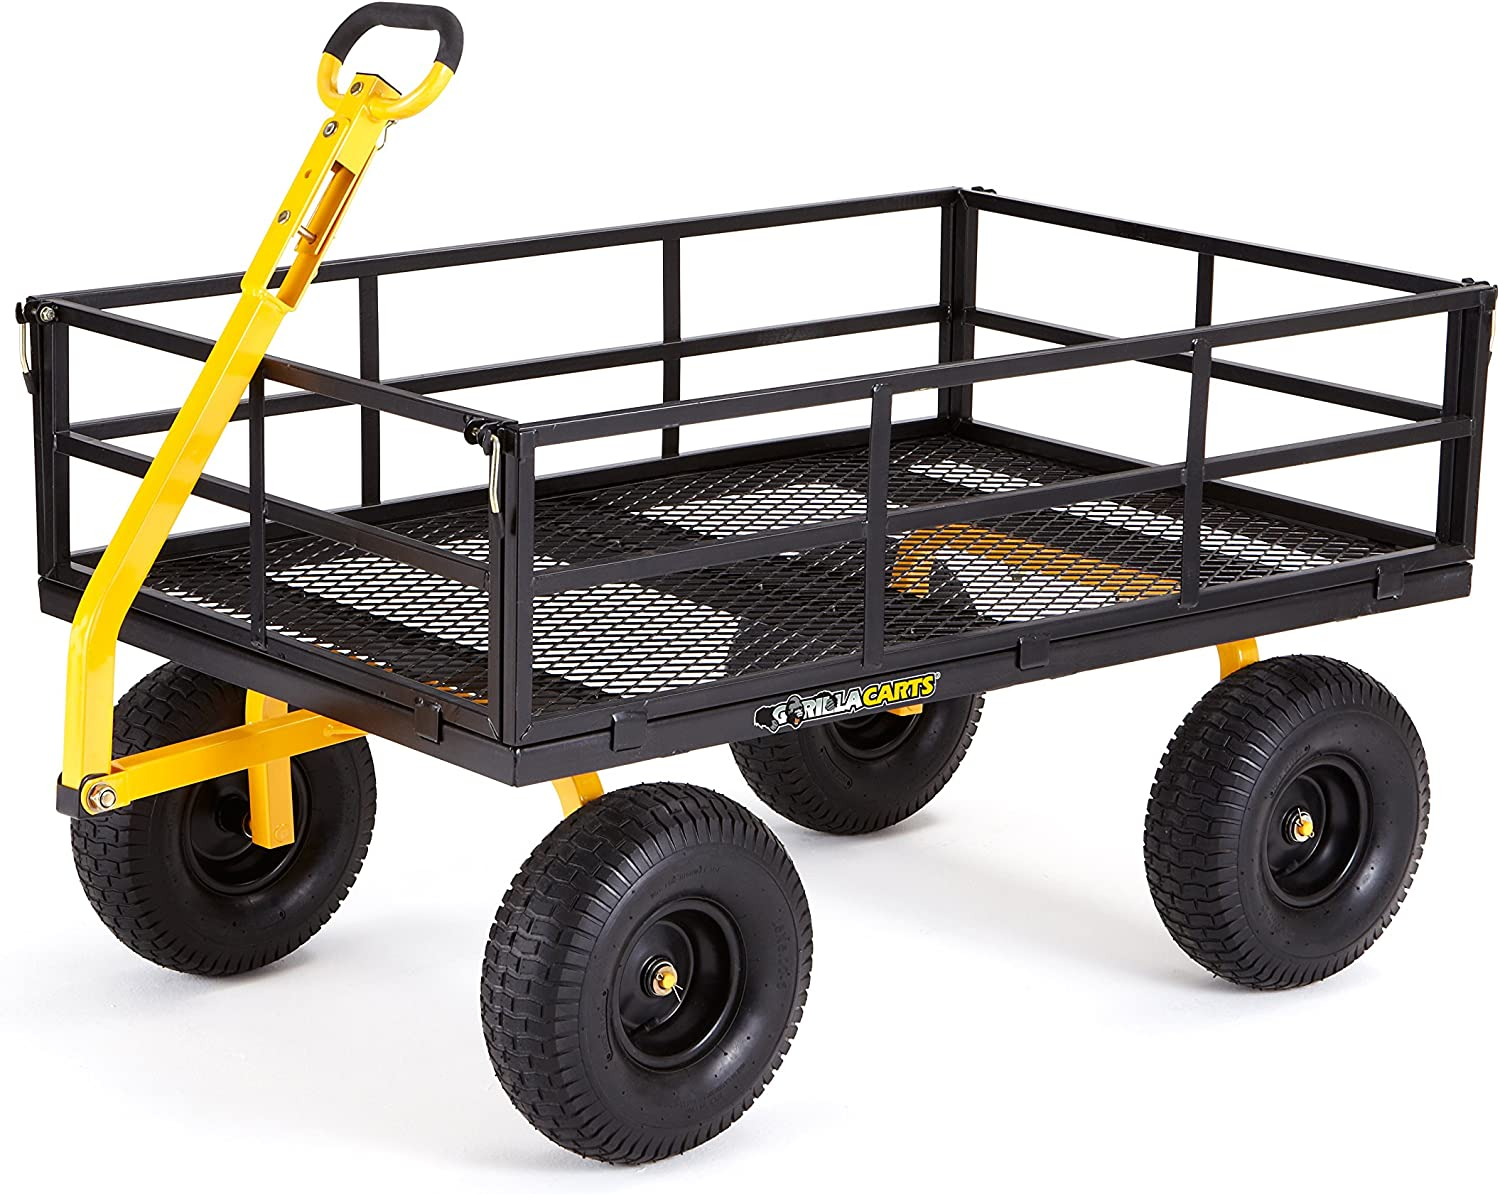 Gorilla Carts GOR1400-COM Heavy-Duty Steel Utility Cart with Removable Sides and 15 Tires, 1400-lbs. Capacity, Black